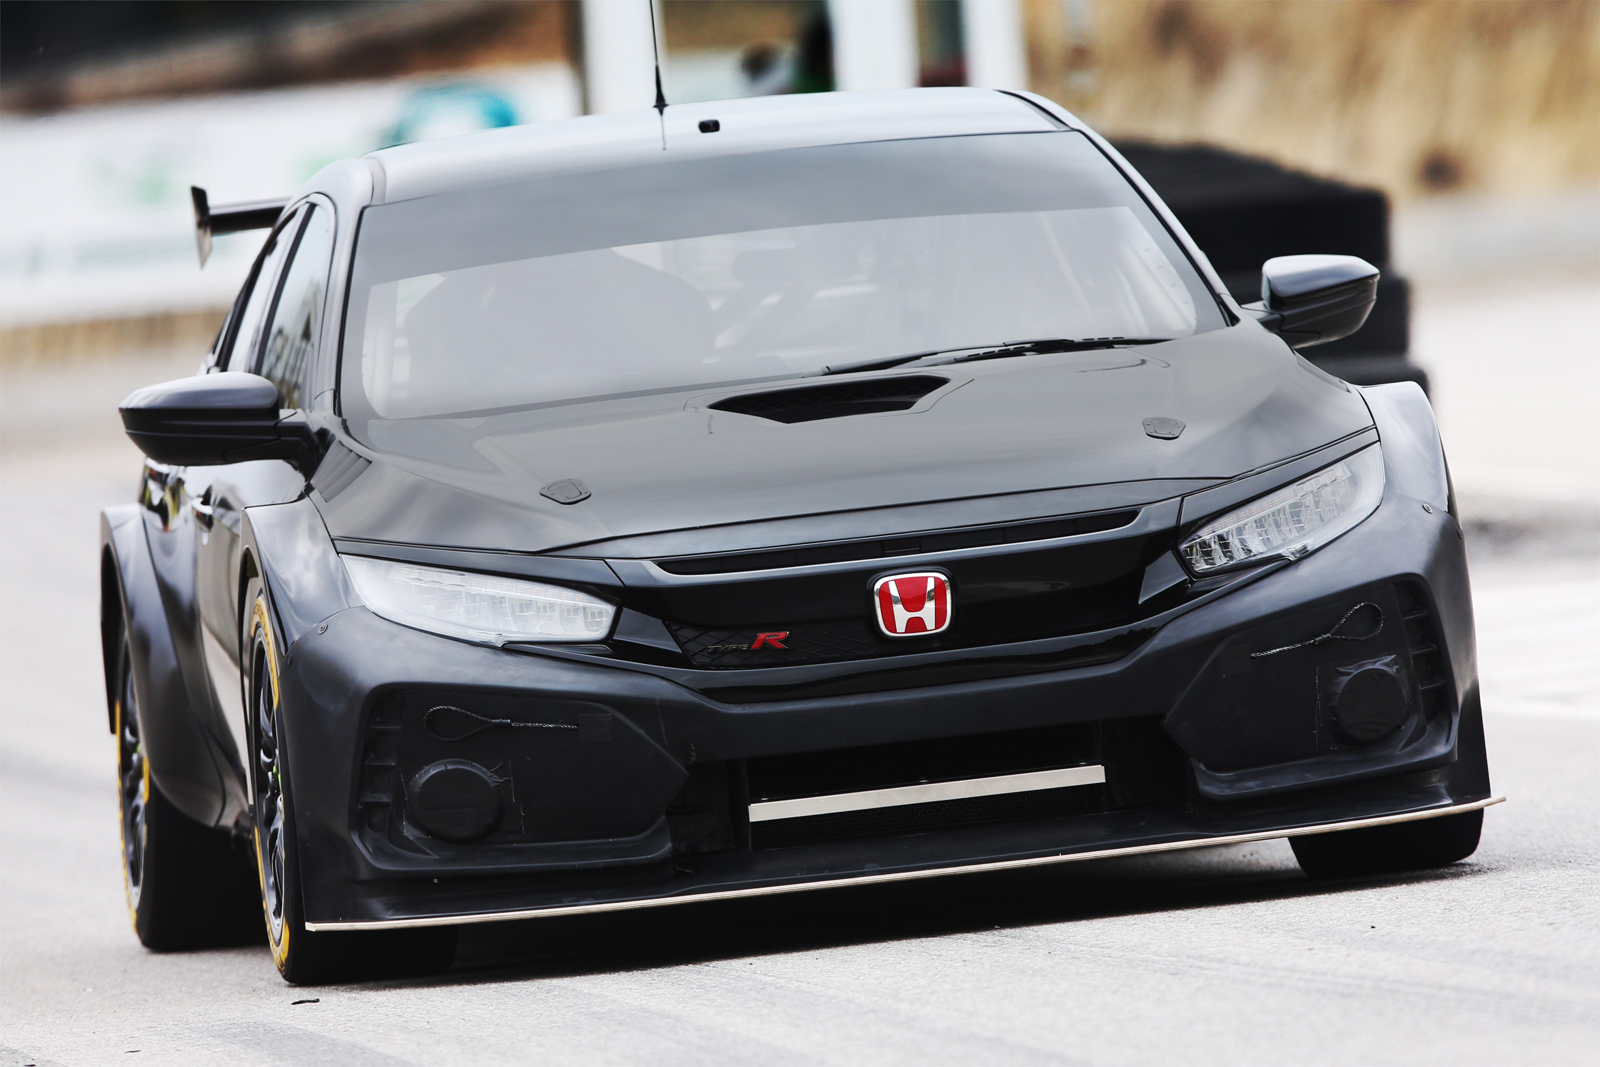 New Honda Civic Type R >> The Honda Civic Type R Makes For A Mean Looking Race Car